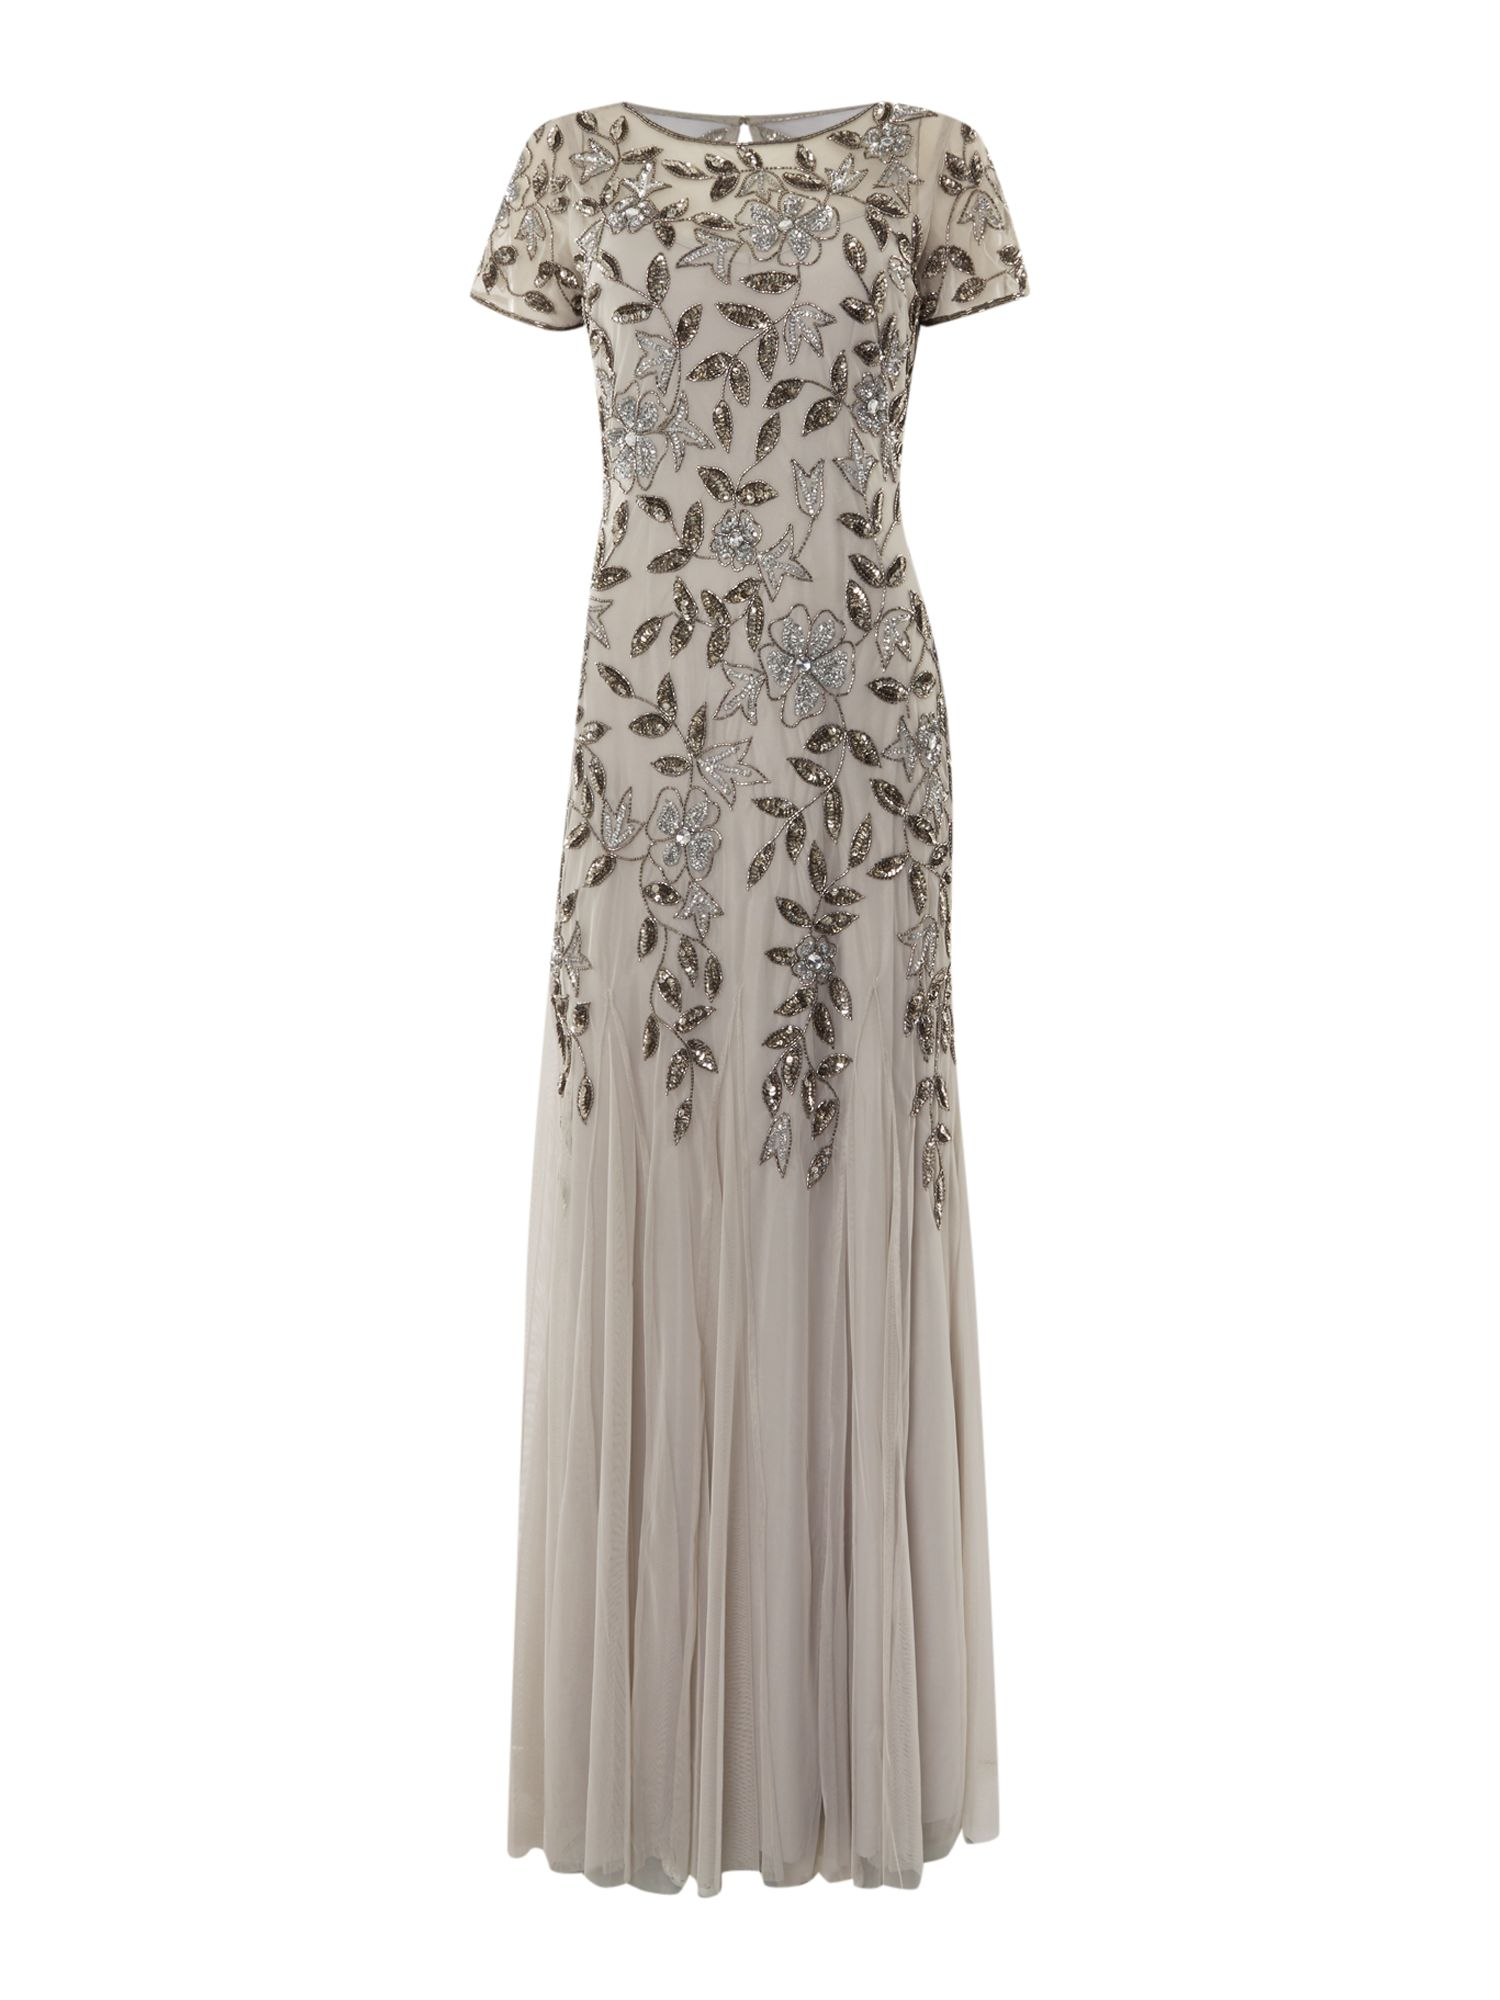 Adrianna Papell Evening Gown Metallic Silver